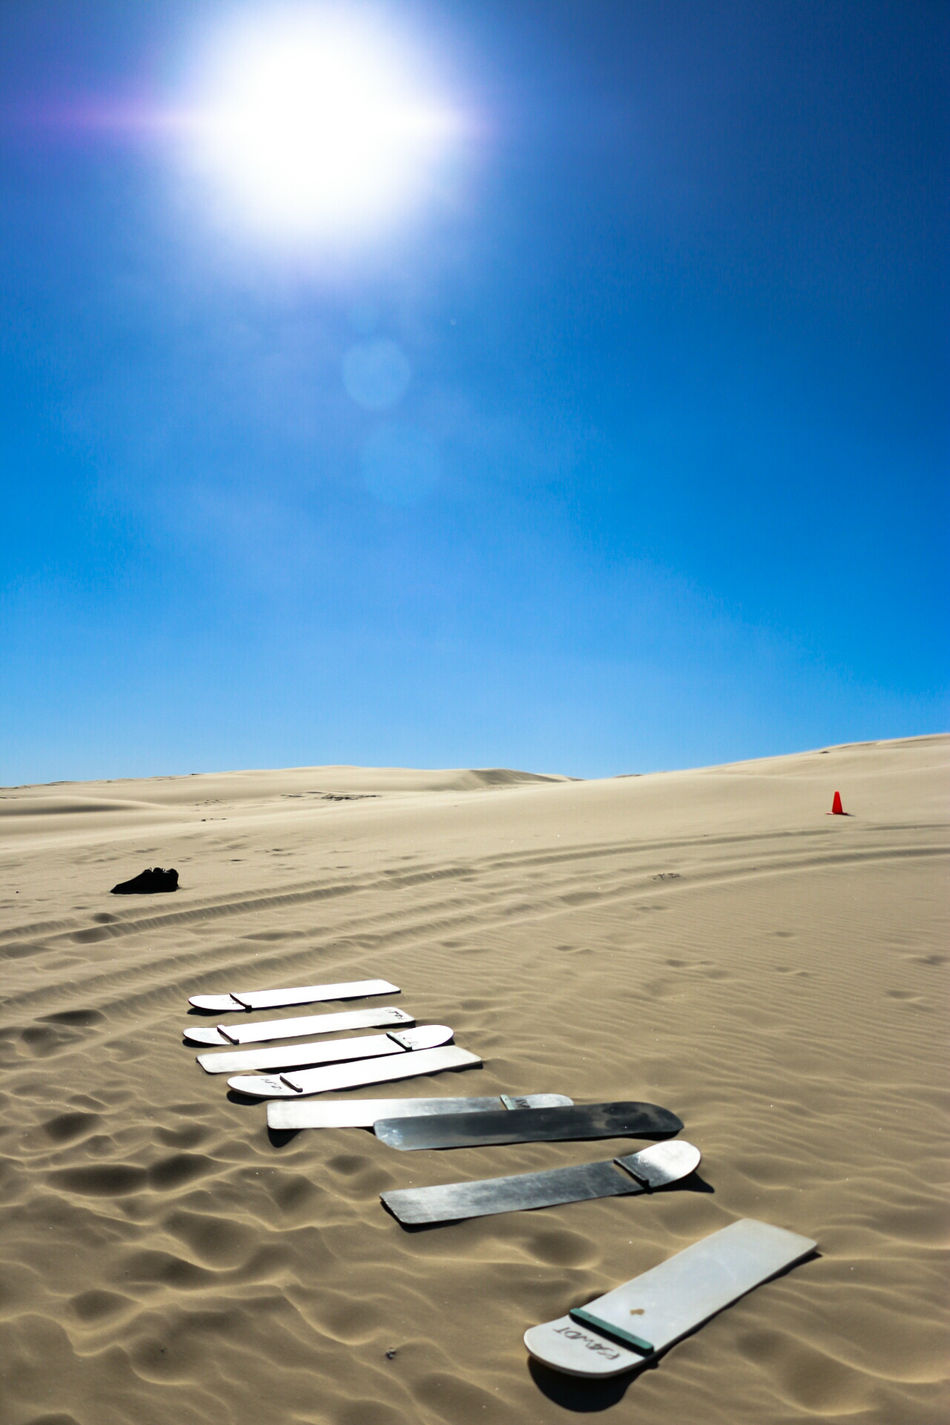 Adventure Club Portstephens Sandboarding Showcase July Eyeemphoto